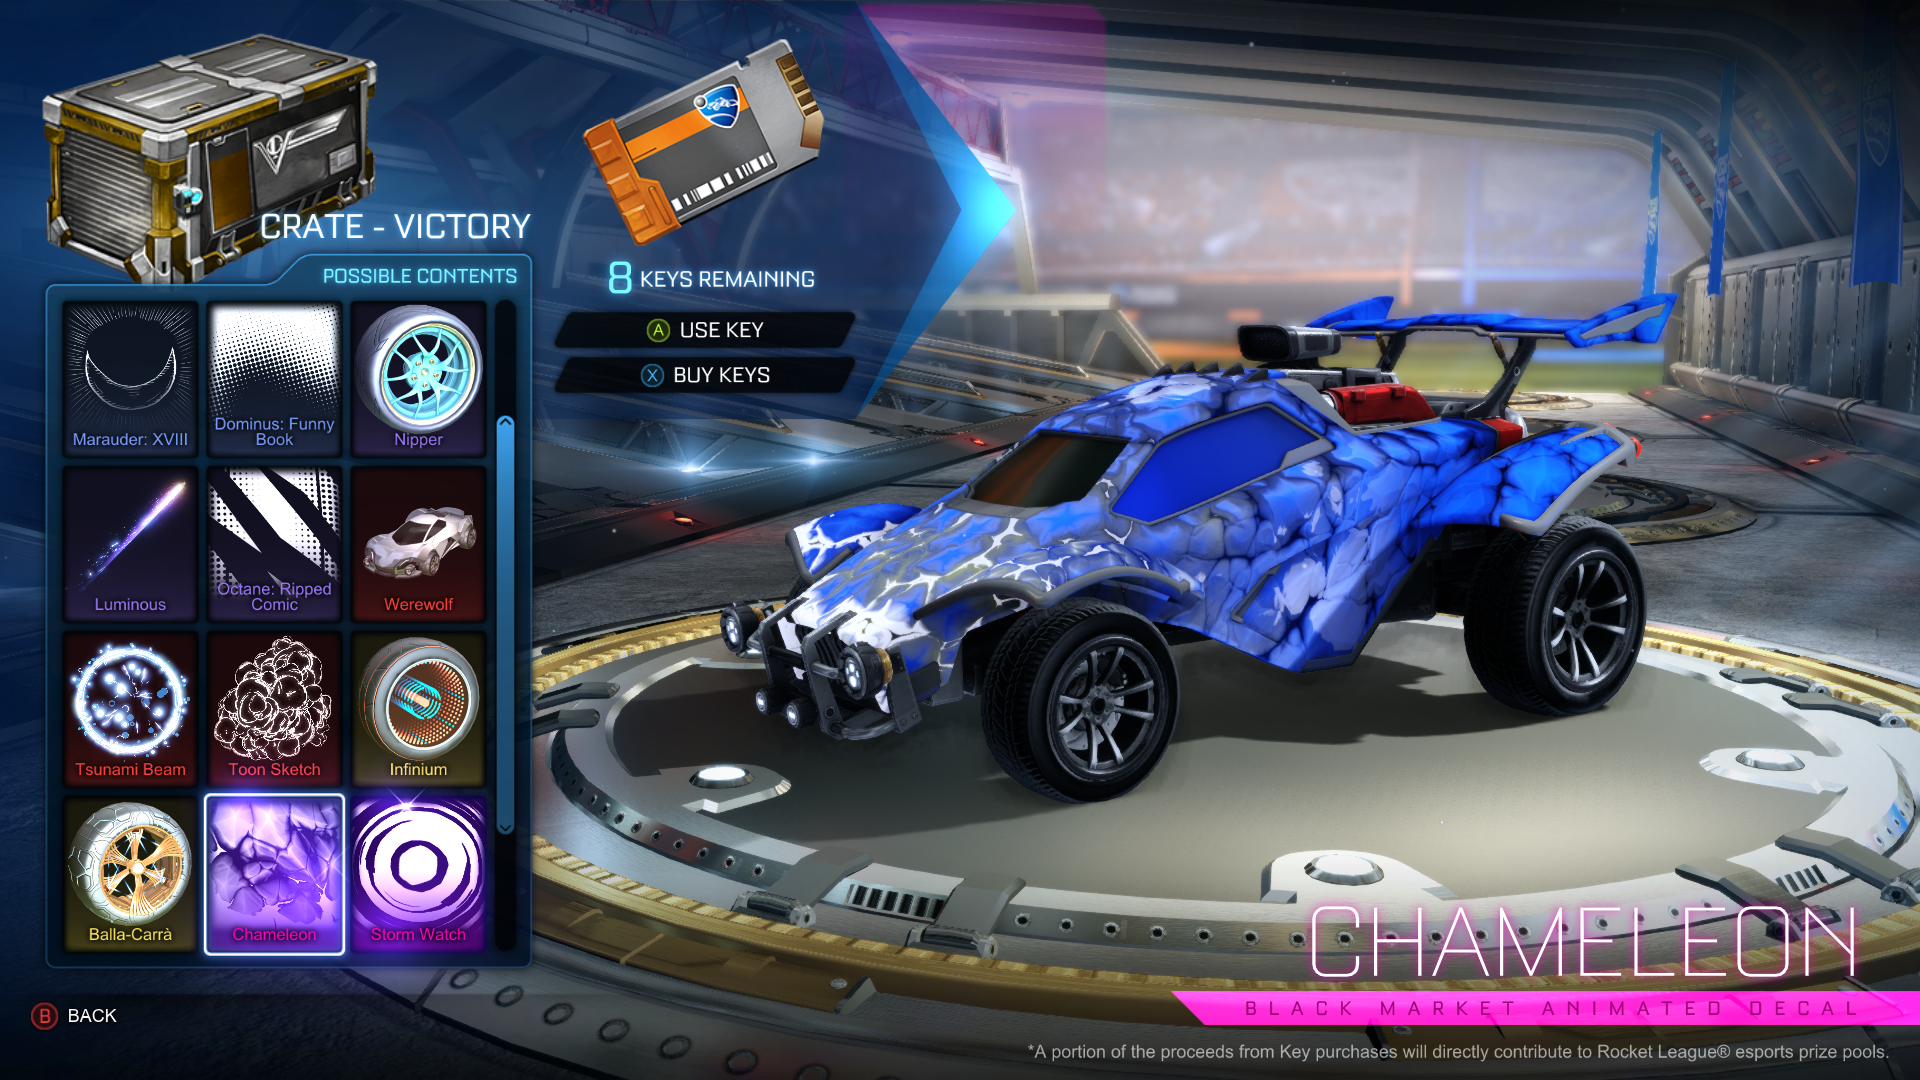 image crate victory chameleon png rocket league wiki